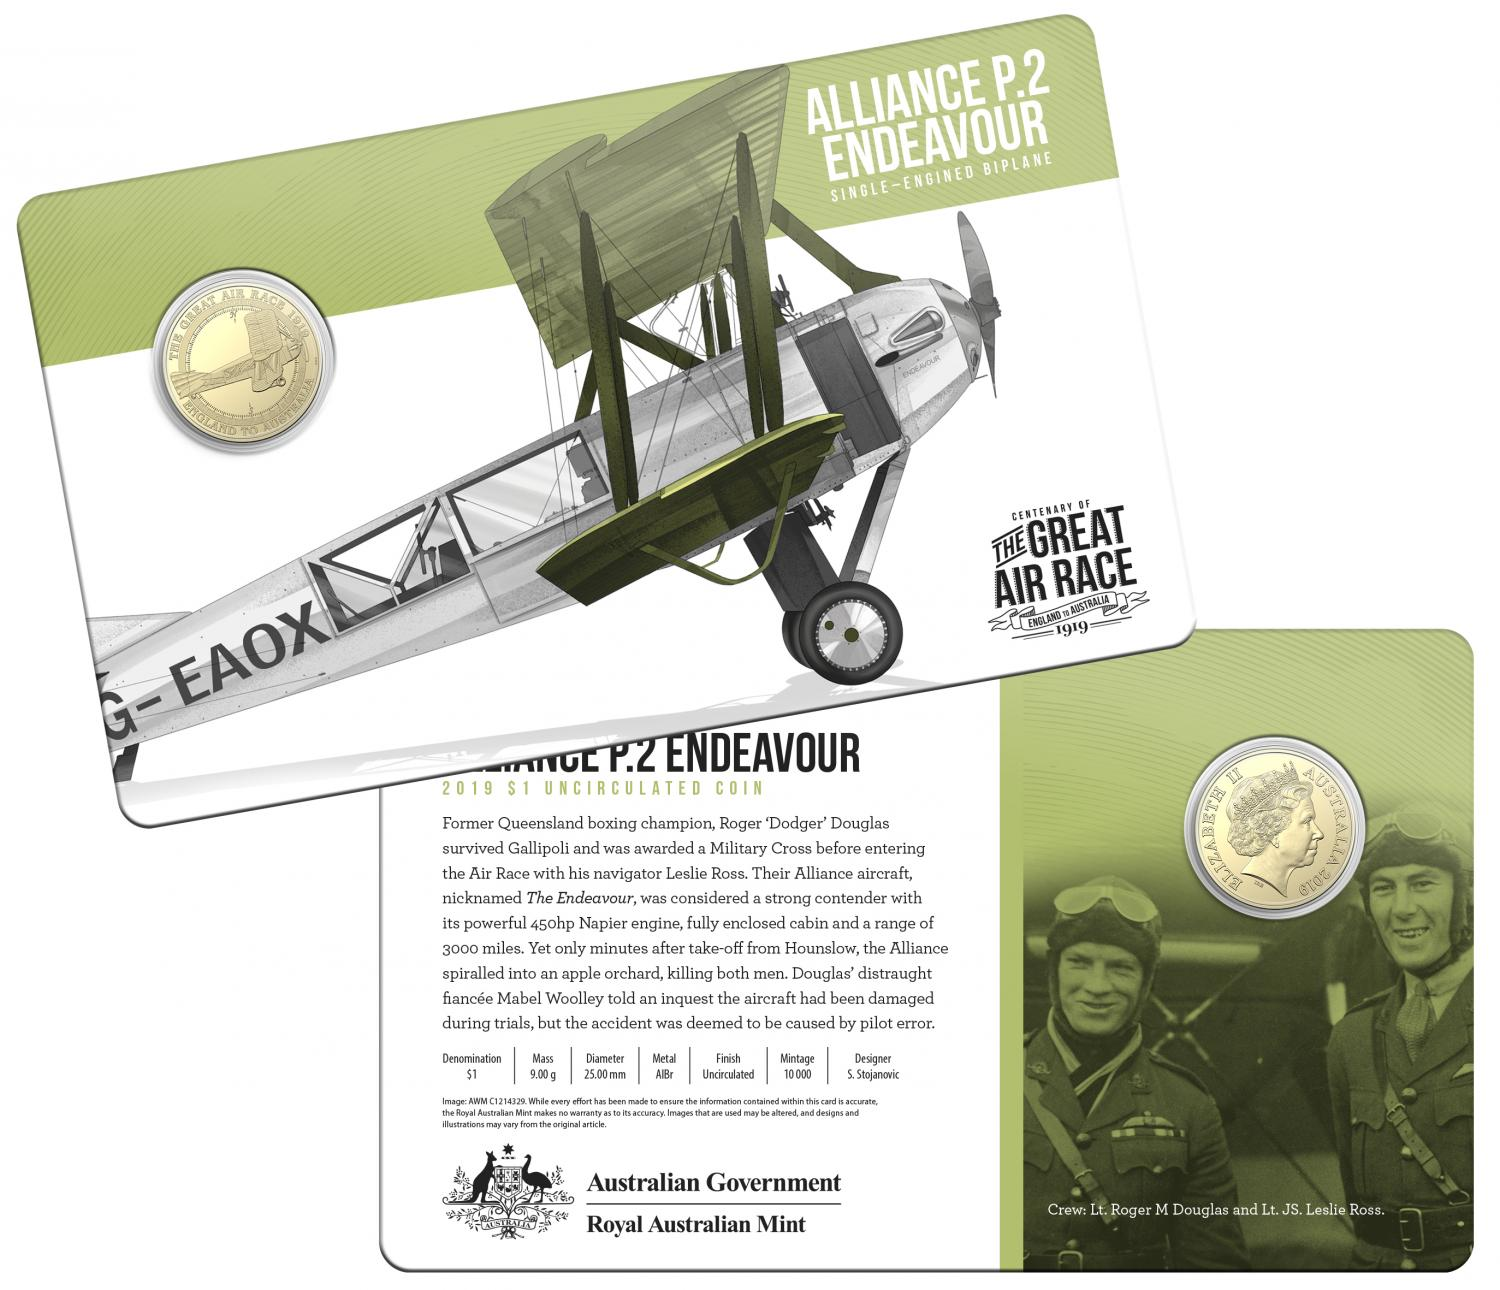 Thumbnail for 2019 Centenary off the Great Air Race Uncirculated $1.00 - Alliance P.2 Endeavour